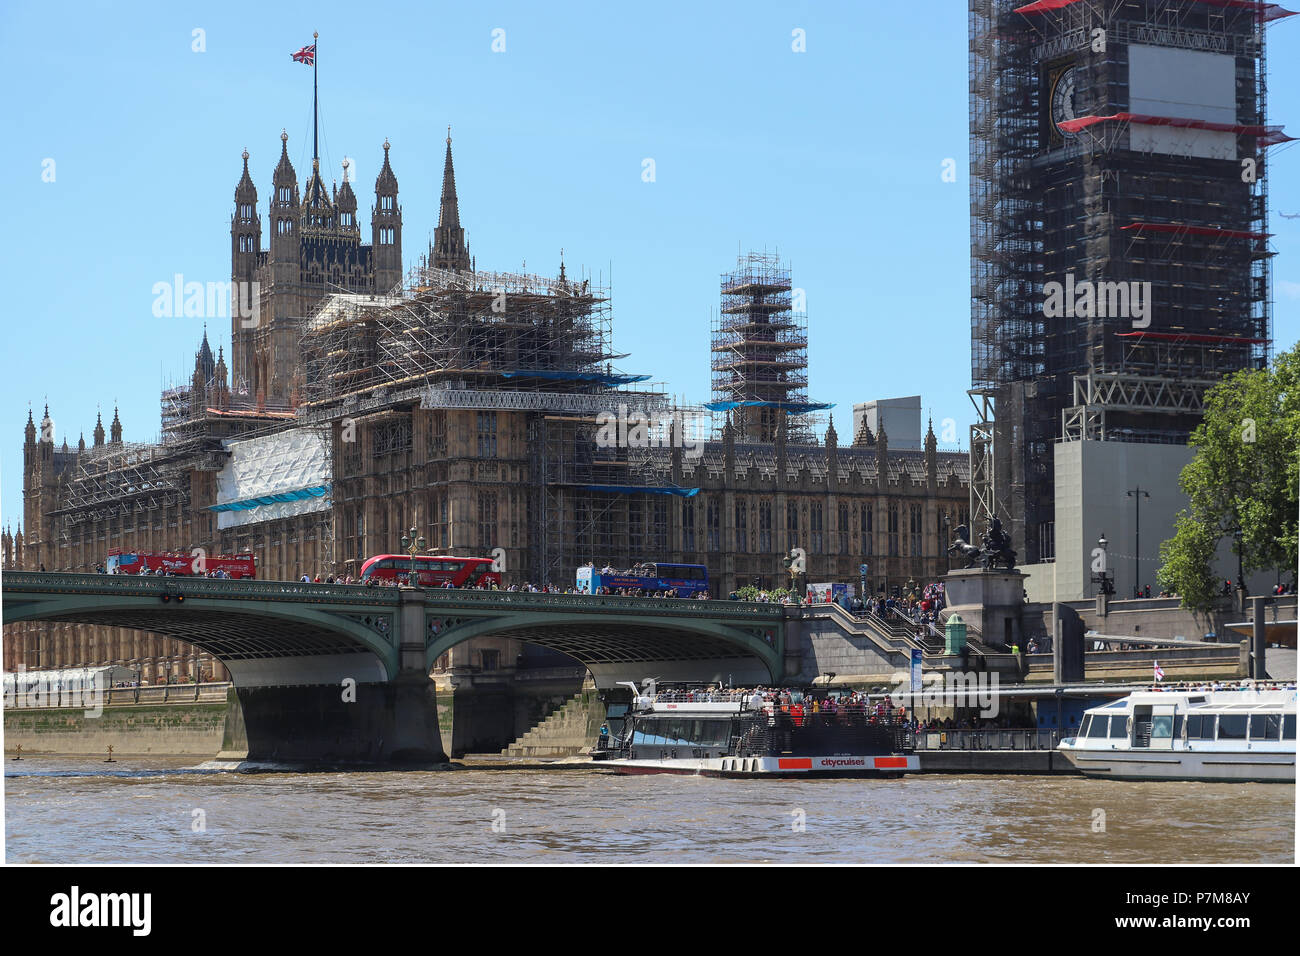 Palace of Westminster,viewed from the River Thames, with its Layher system scaffolding as the Restoration and Renewal Programme begins conservation. - Stock Image